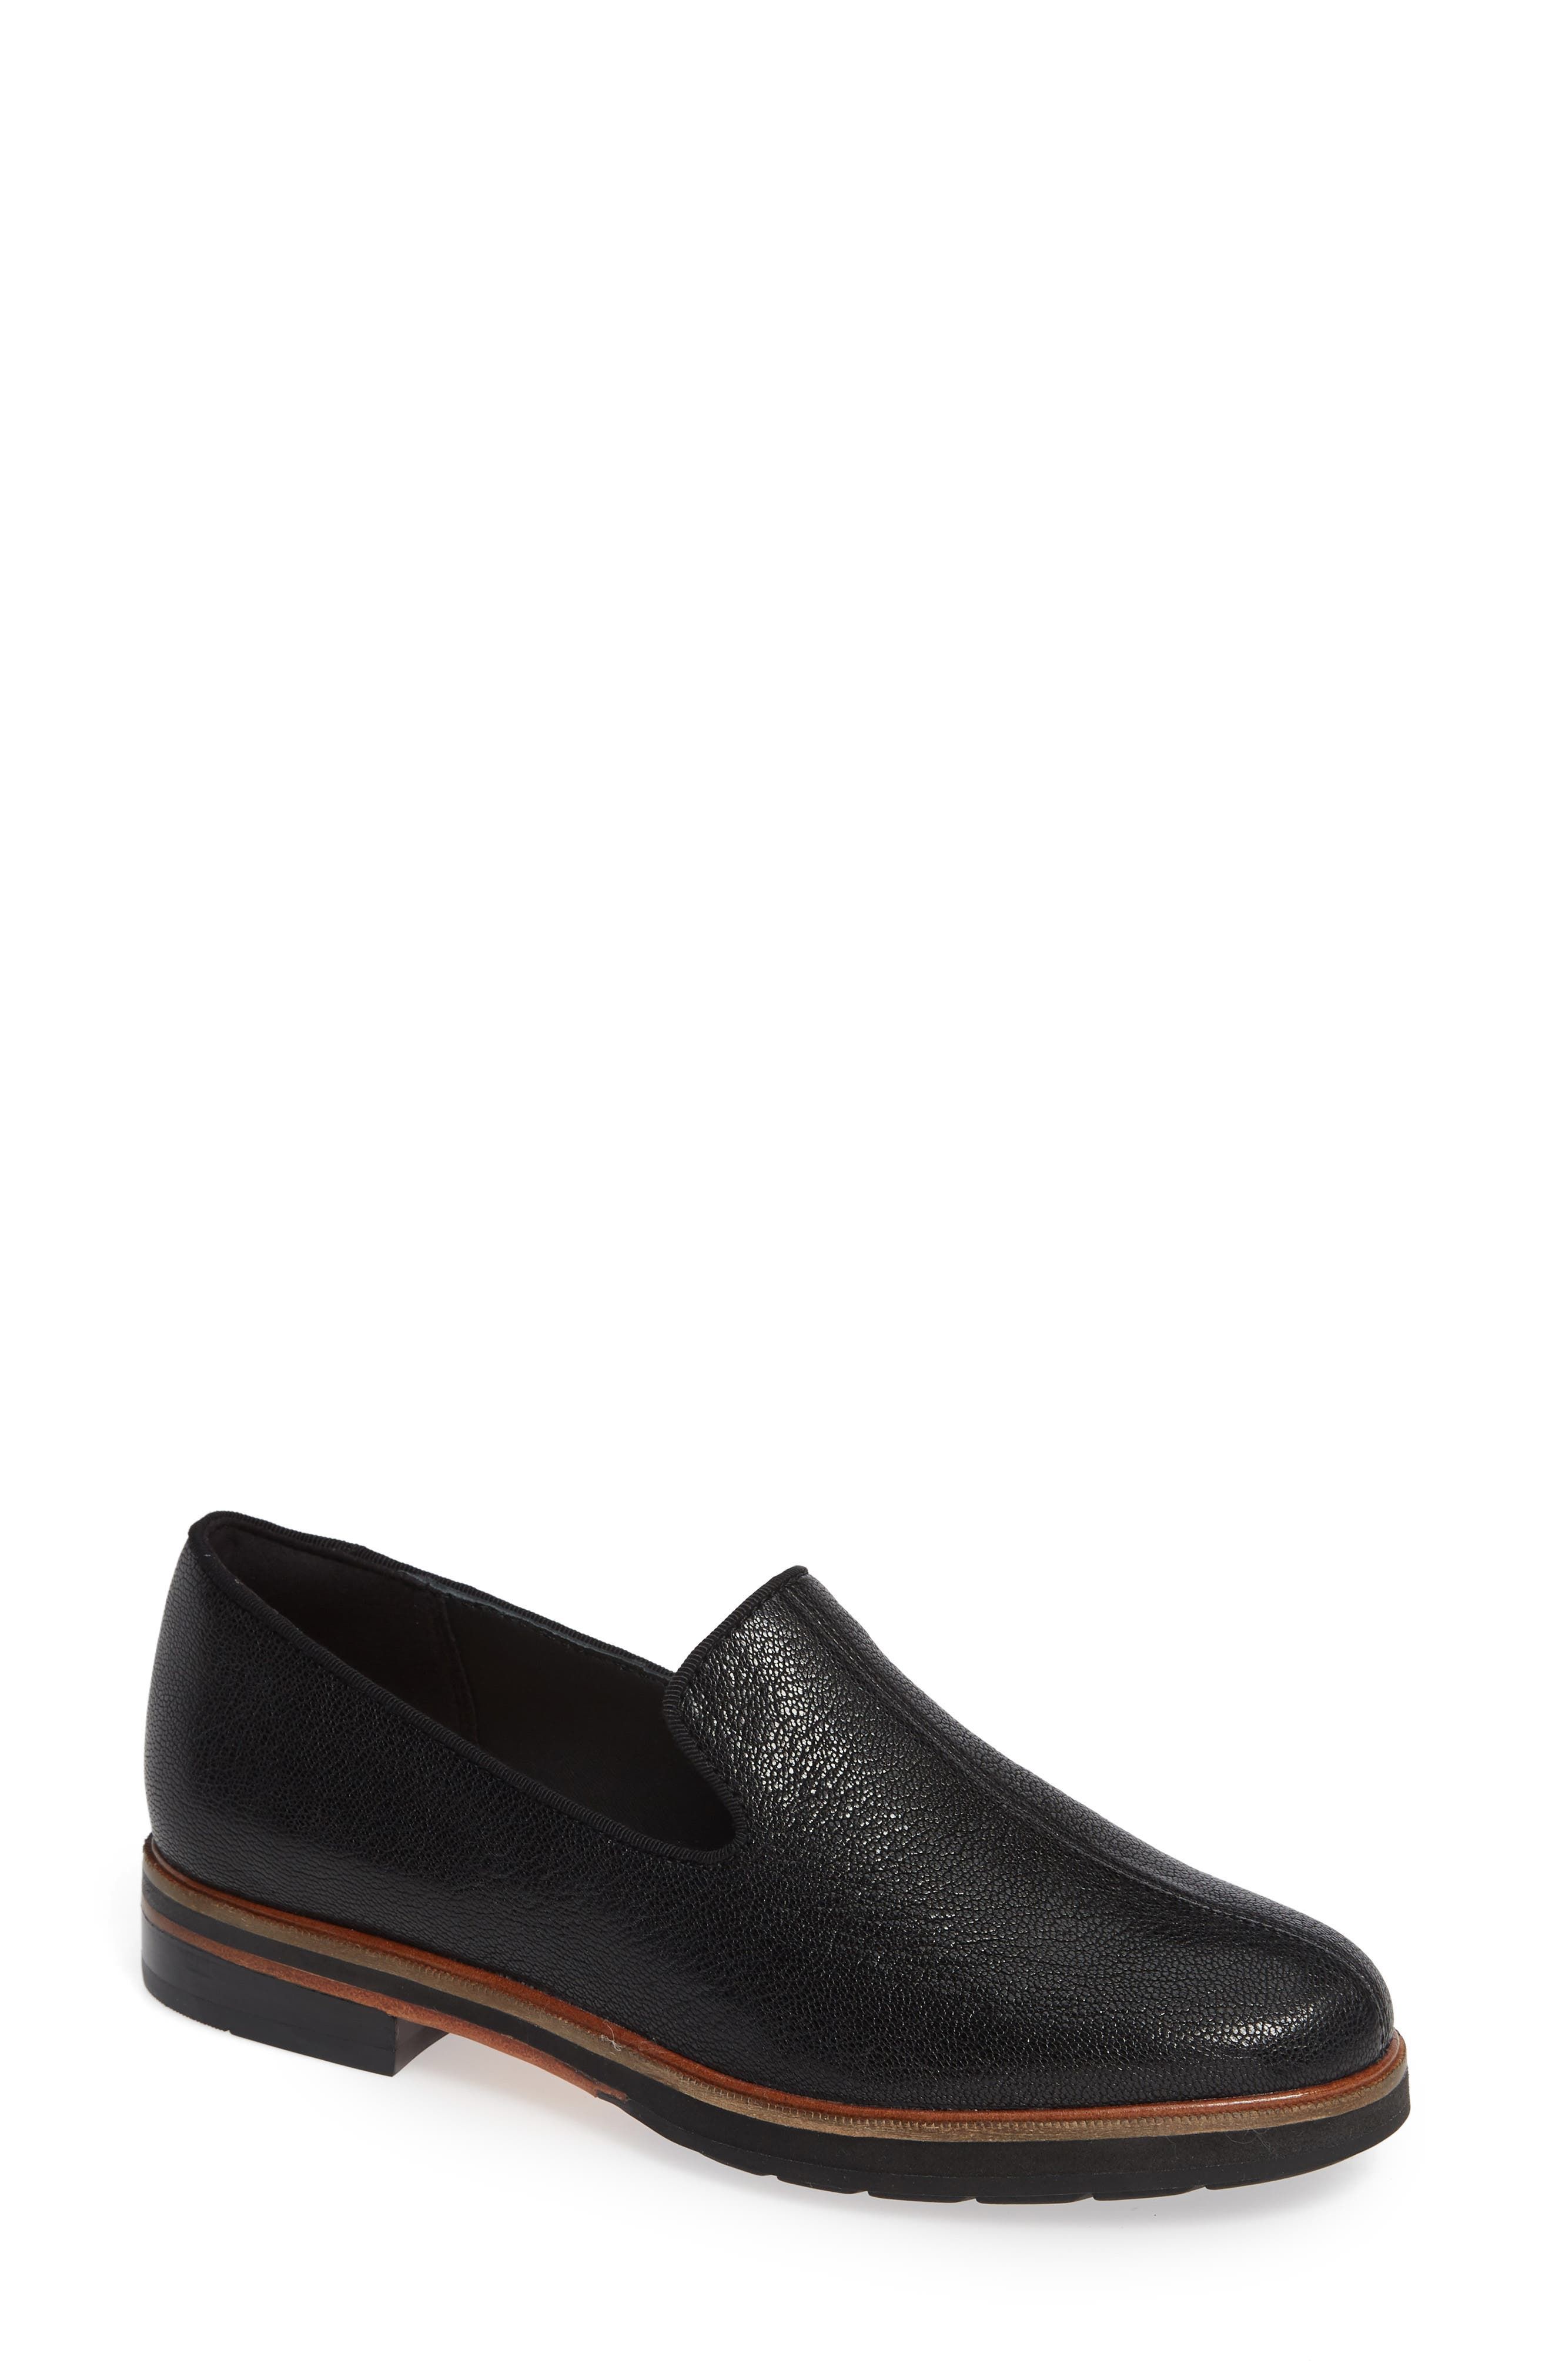 CLARKS<SUP>®</SUP>, Frida Loafer, Main thumbnail 1, color, BLACK TUMBLED LEATHER